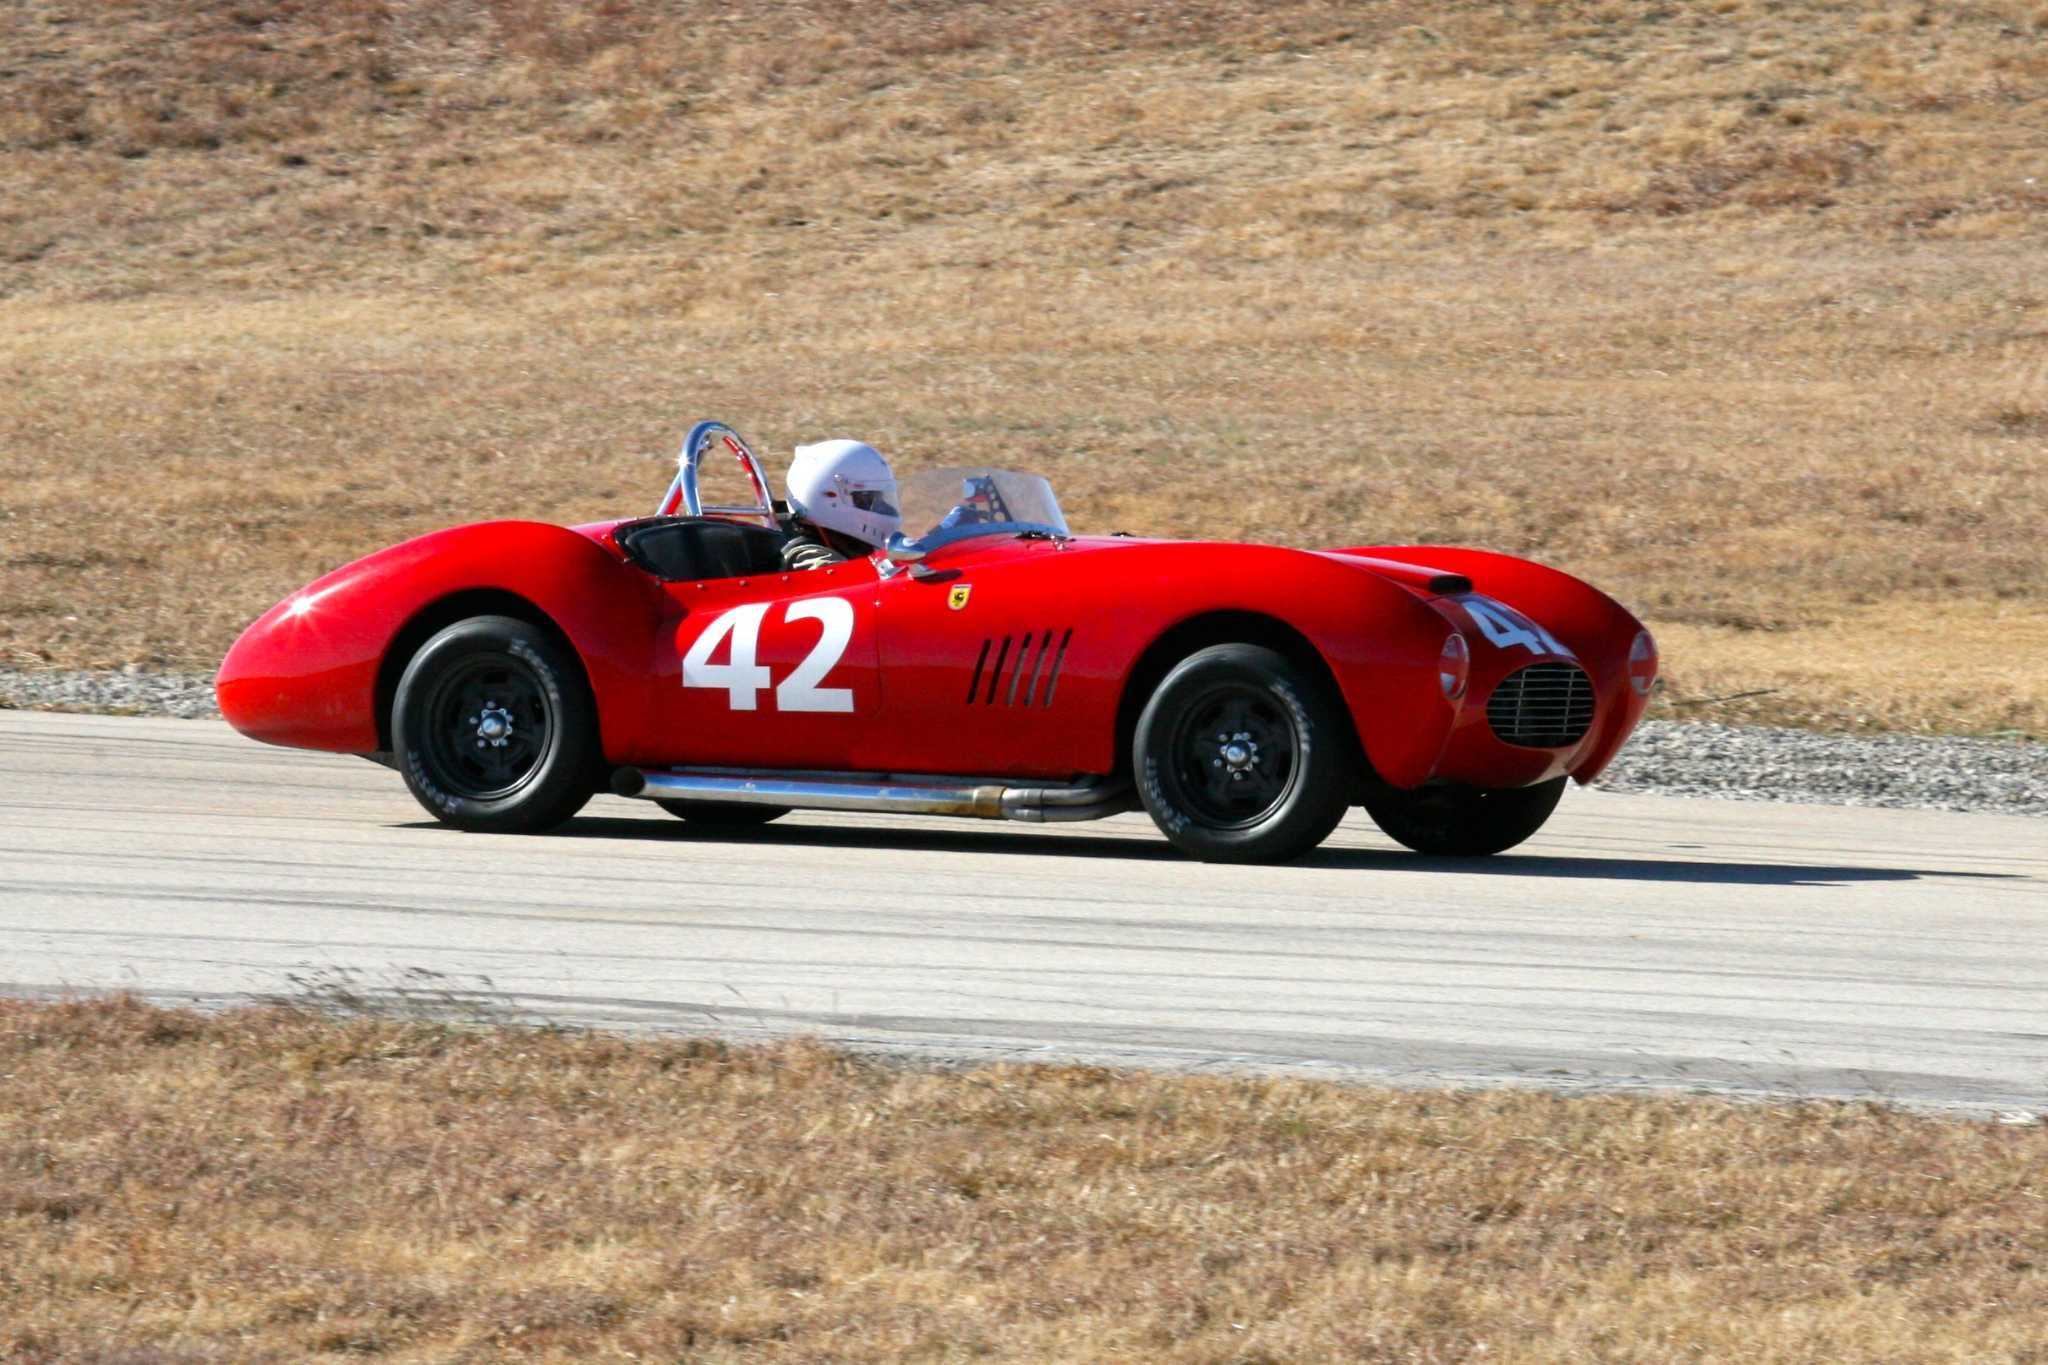 Corinthian Vintage Auto Racing Club brings the rumble of vintage cars to the race track